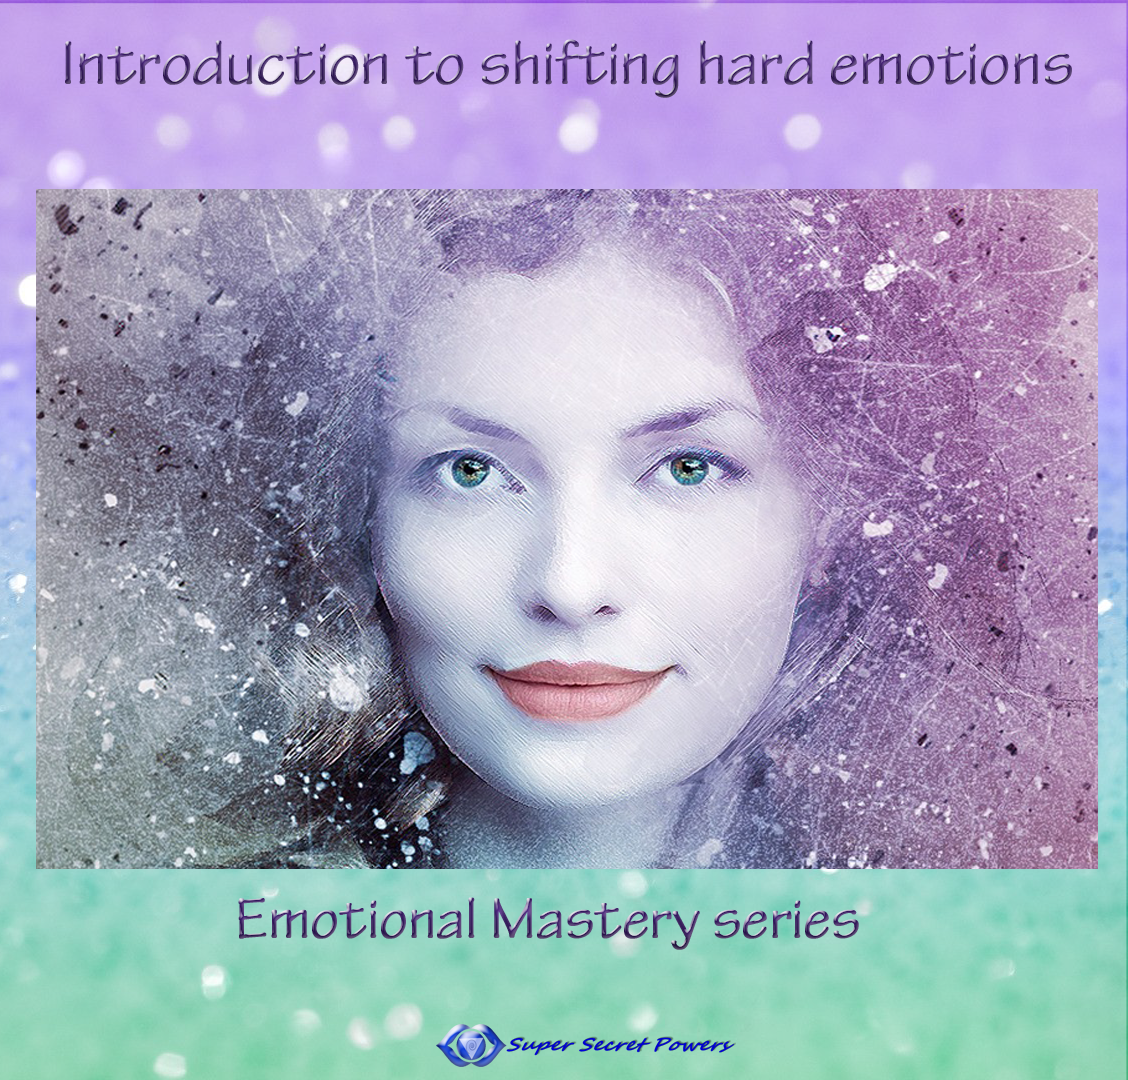 Introduction to shifting hard emotions: Emotional Mastery series